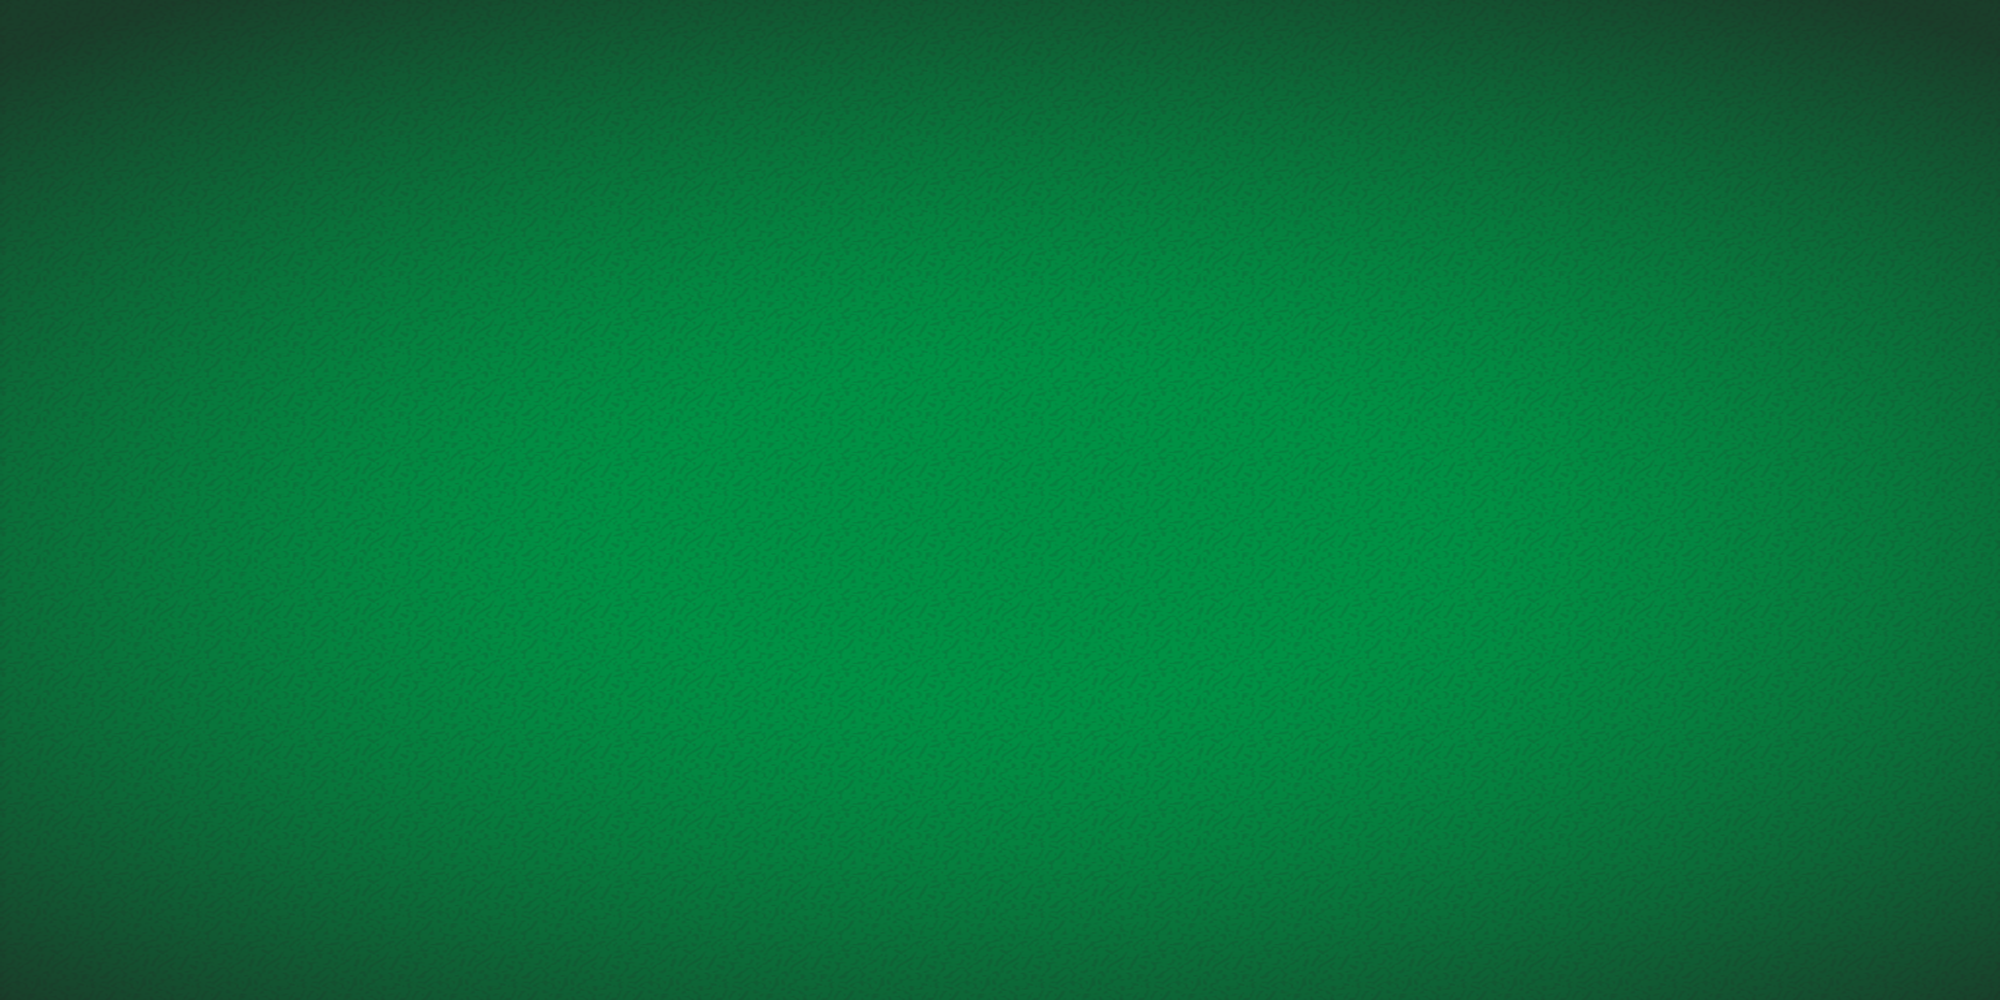 solid bright green background - photo #45